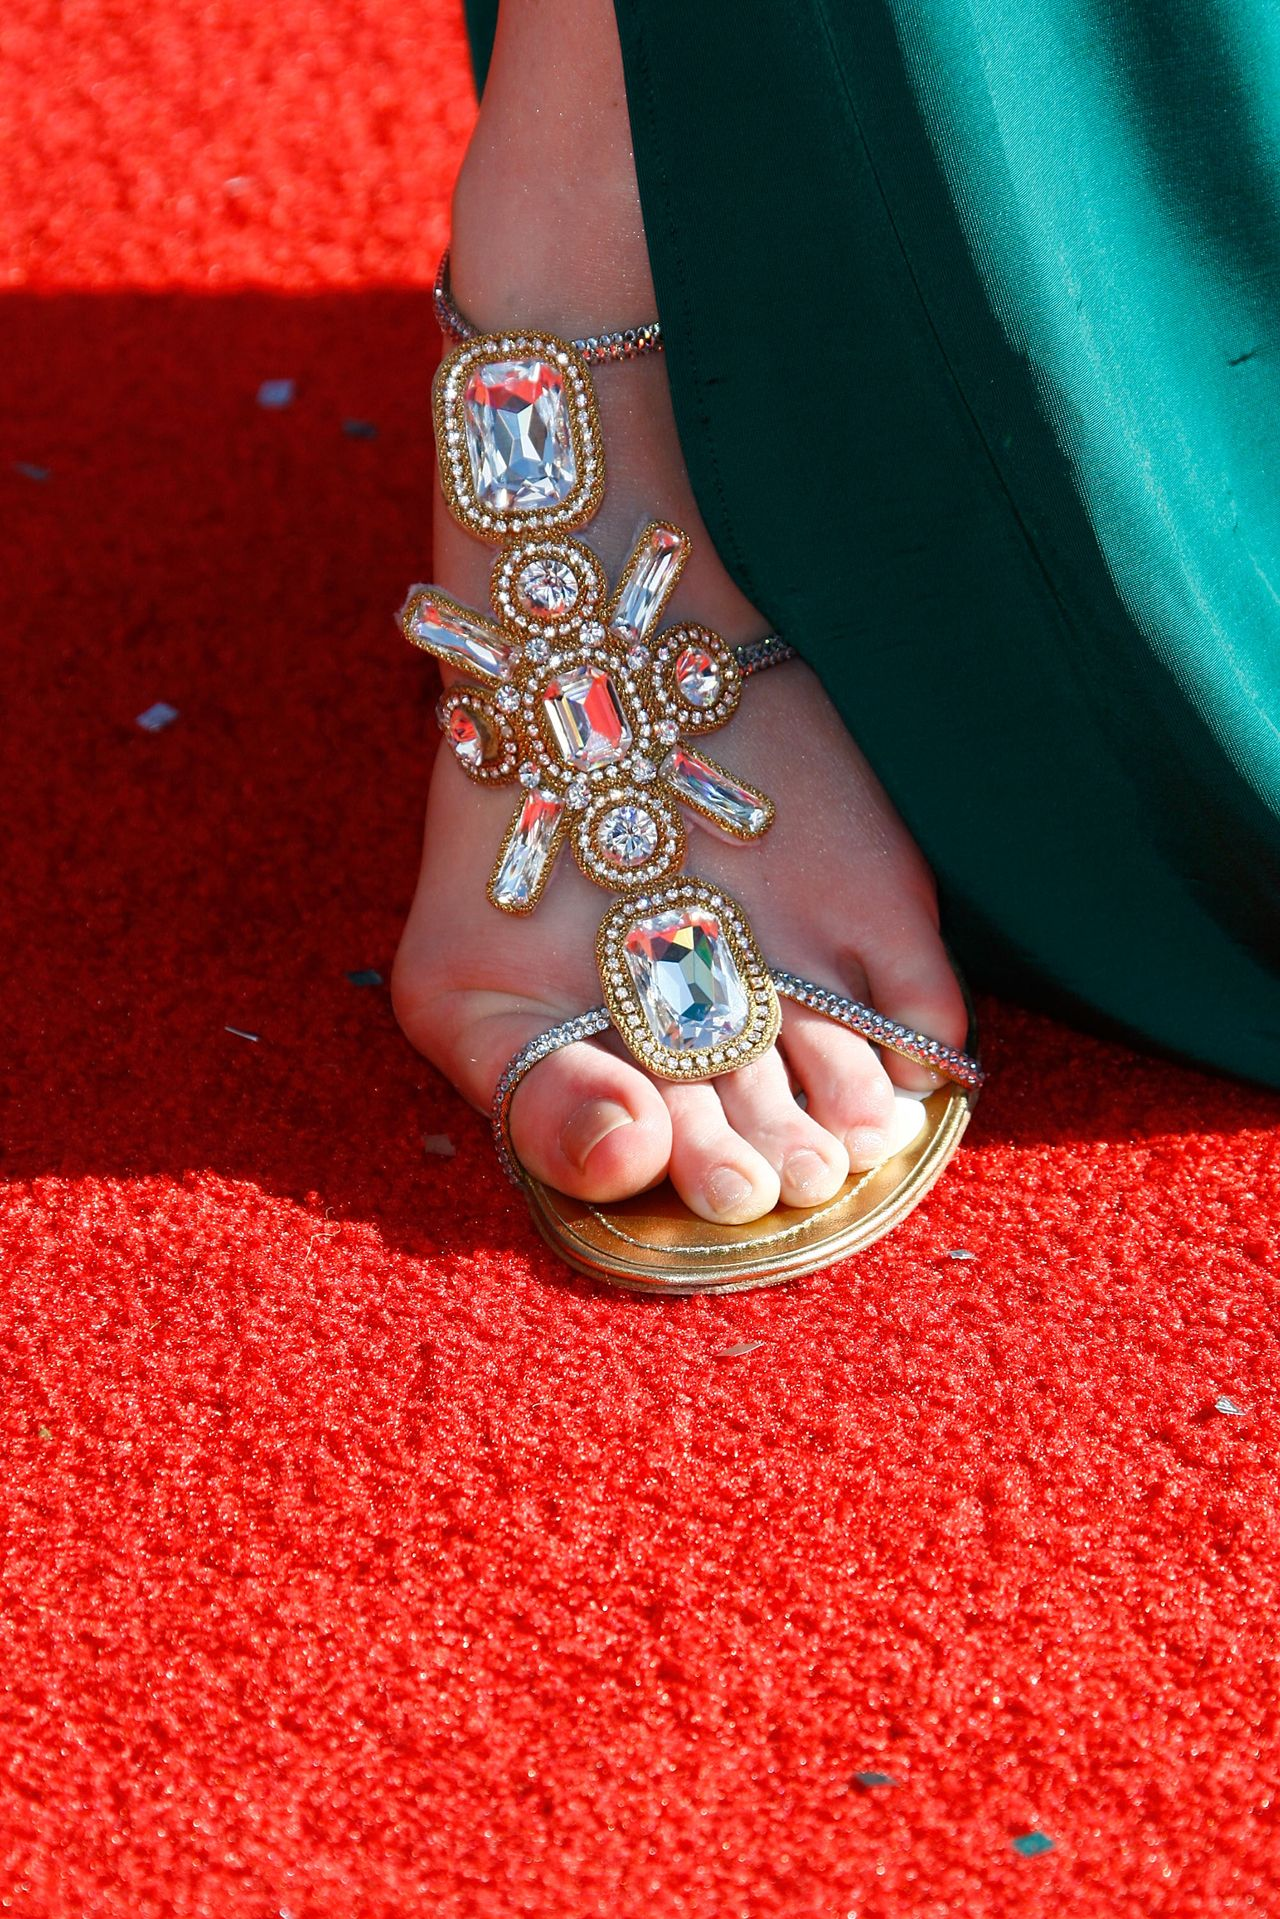 Christinas Feet Close Up Ugliest Celebrity View Ares Maroon Nokha Sneakers Women 36 Pictures And Photo Galleries At Hollyscoop